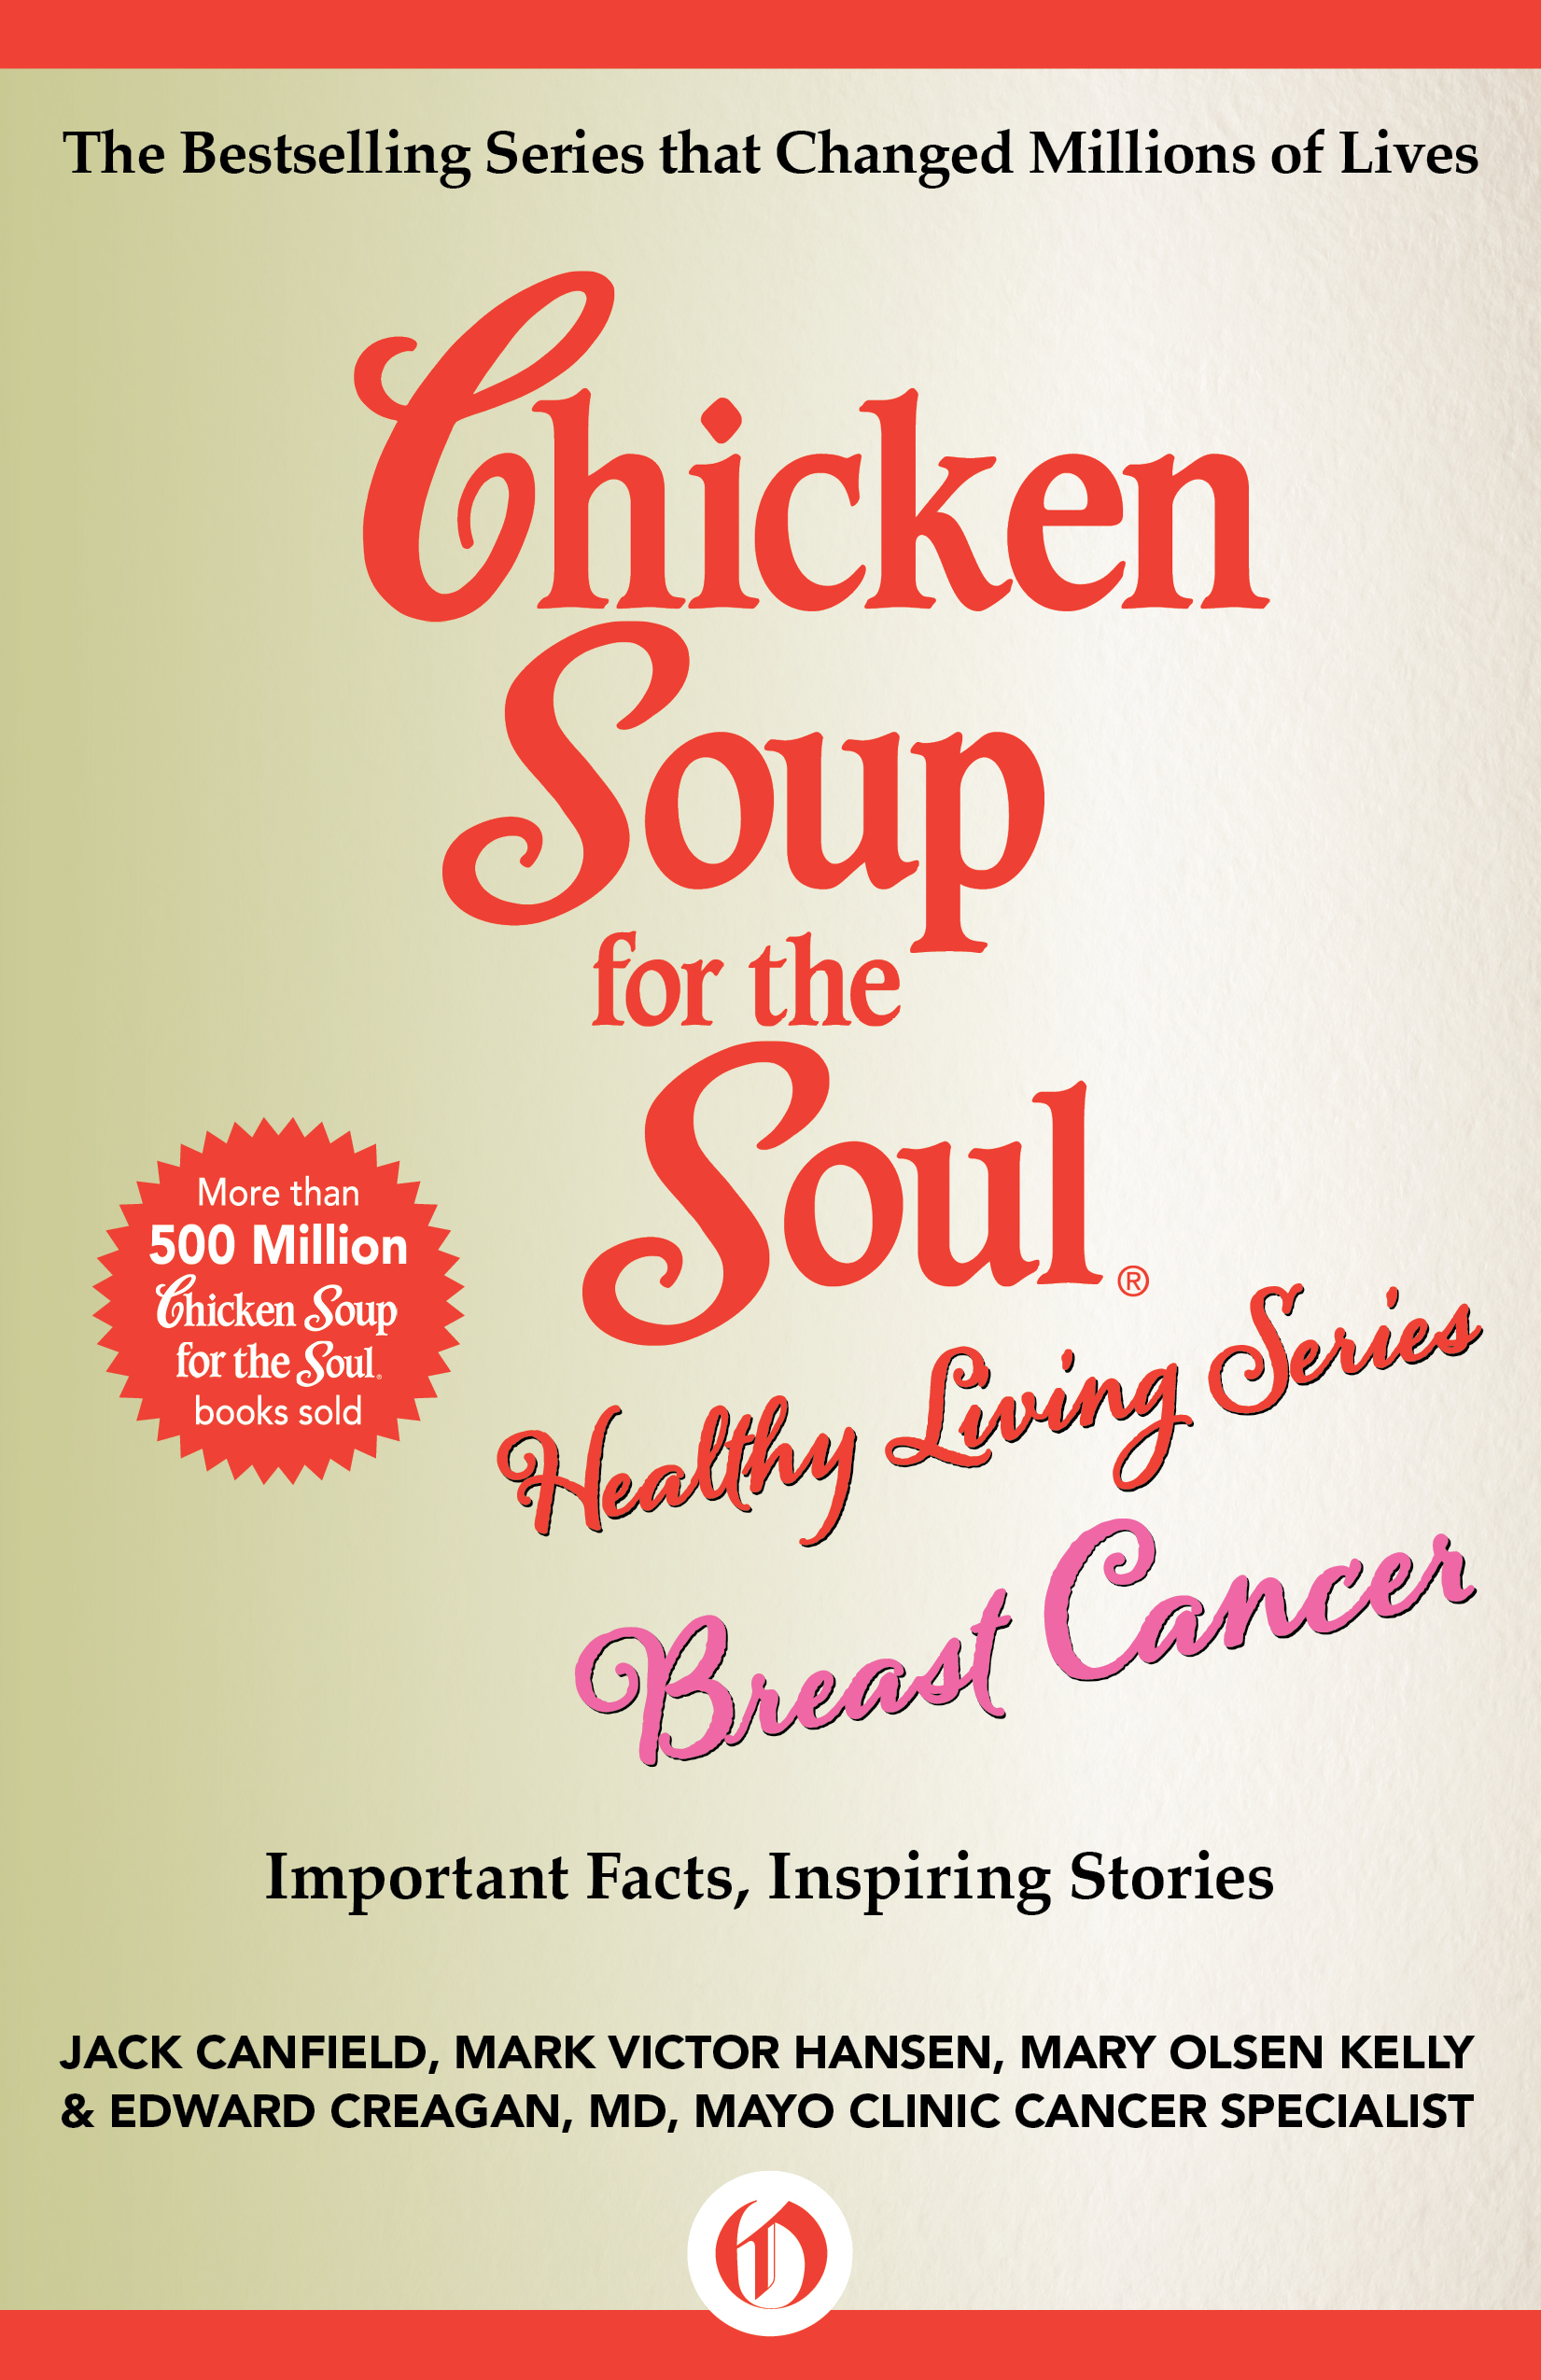 Chicken Soup for the Soul Healthy Living Series: Breast Cancer